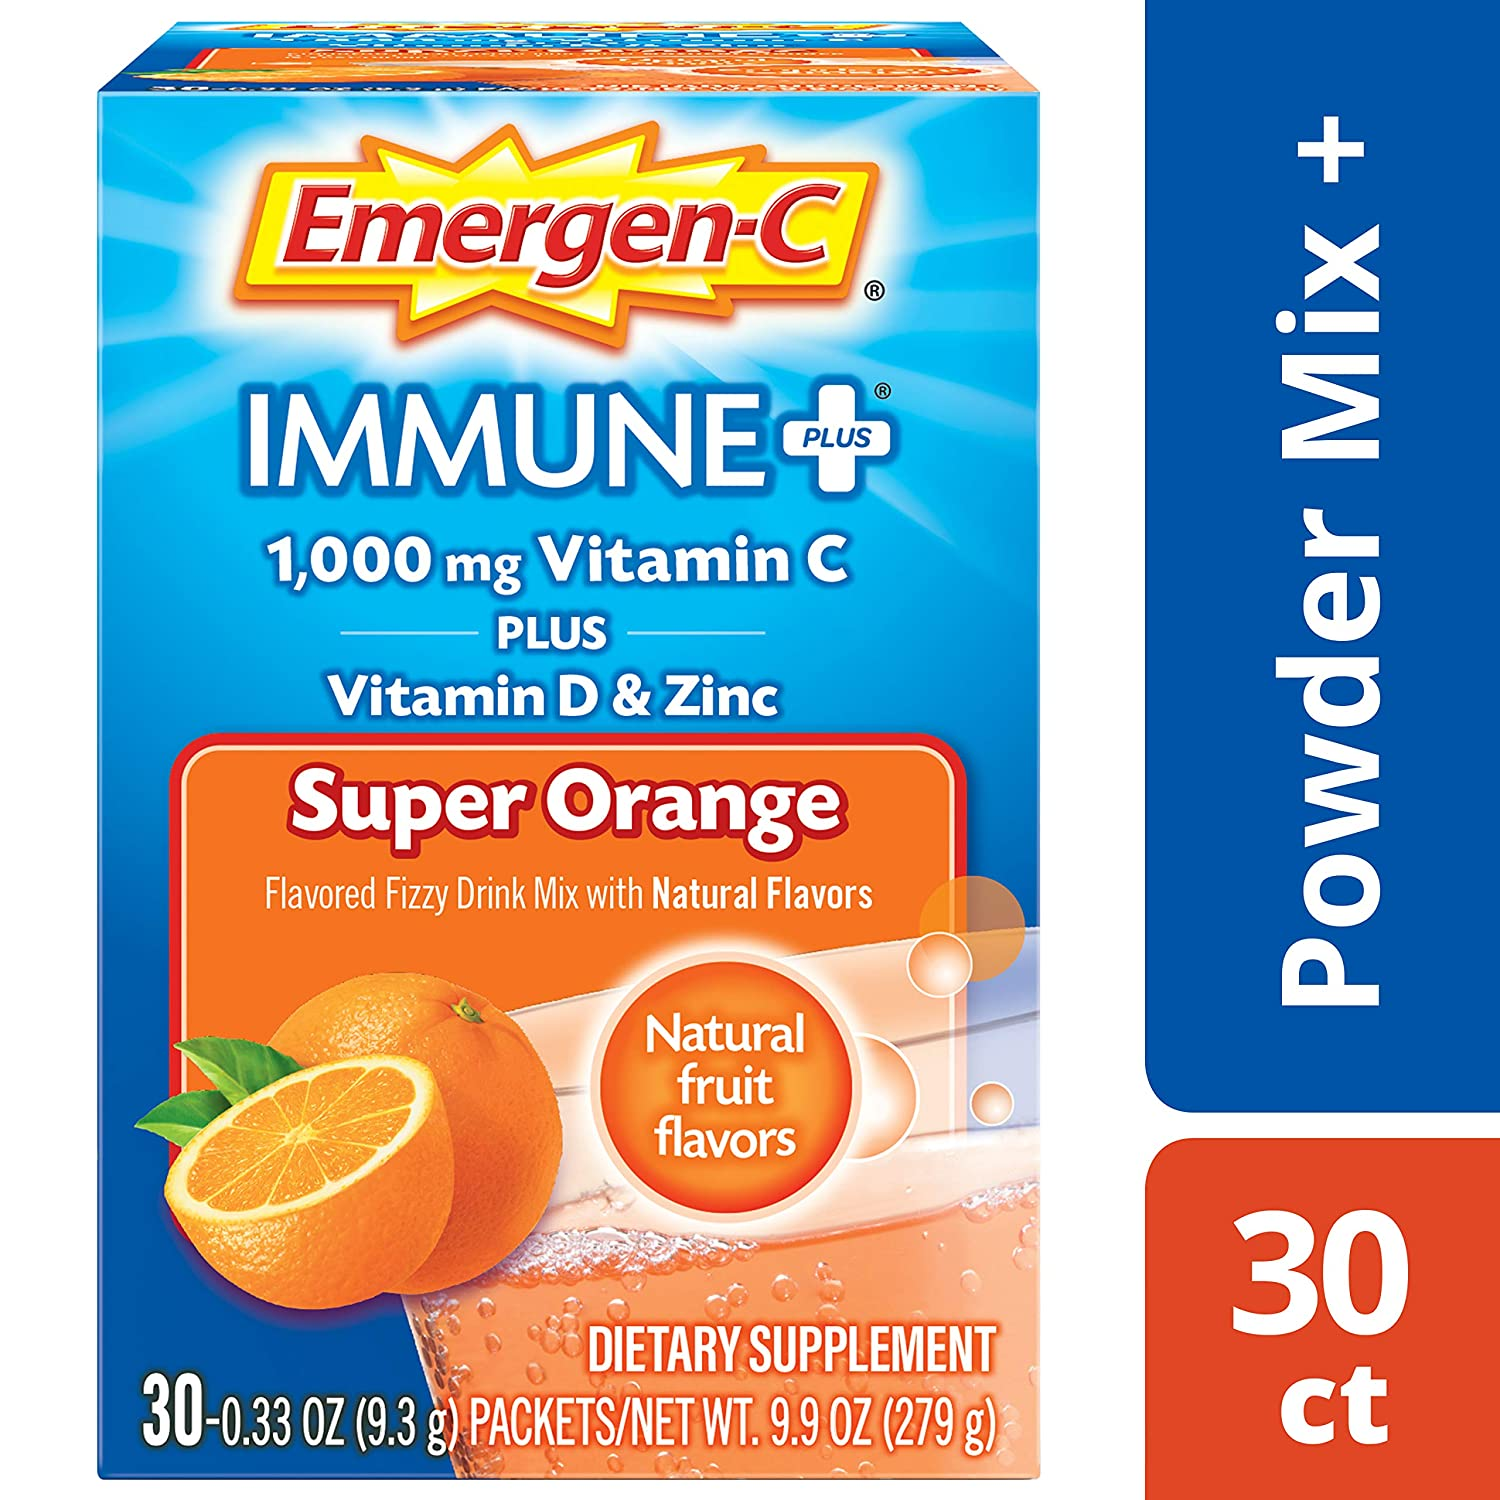 Emergen-C Immune+ Vitamin C 1000mg Powder, Plus Vitamin D And Zinc